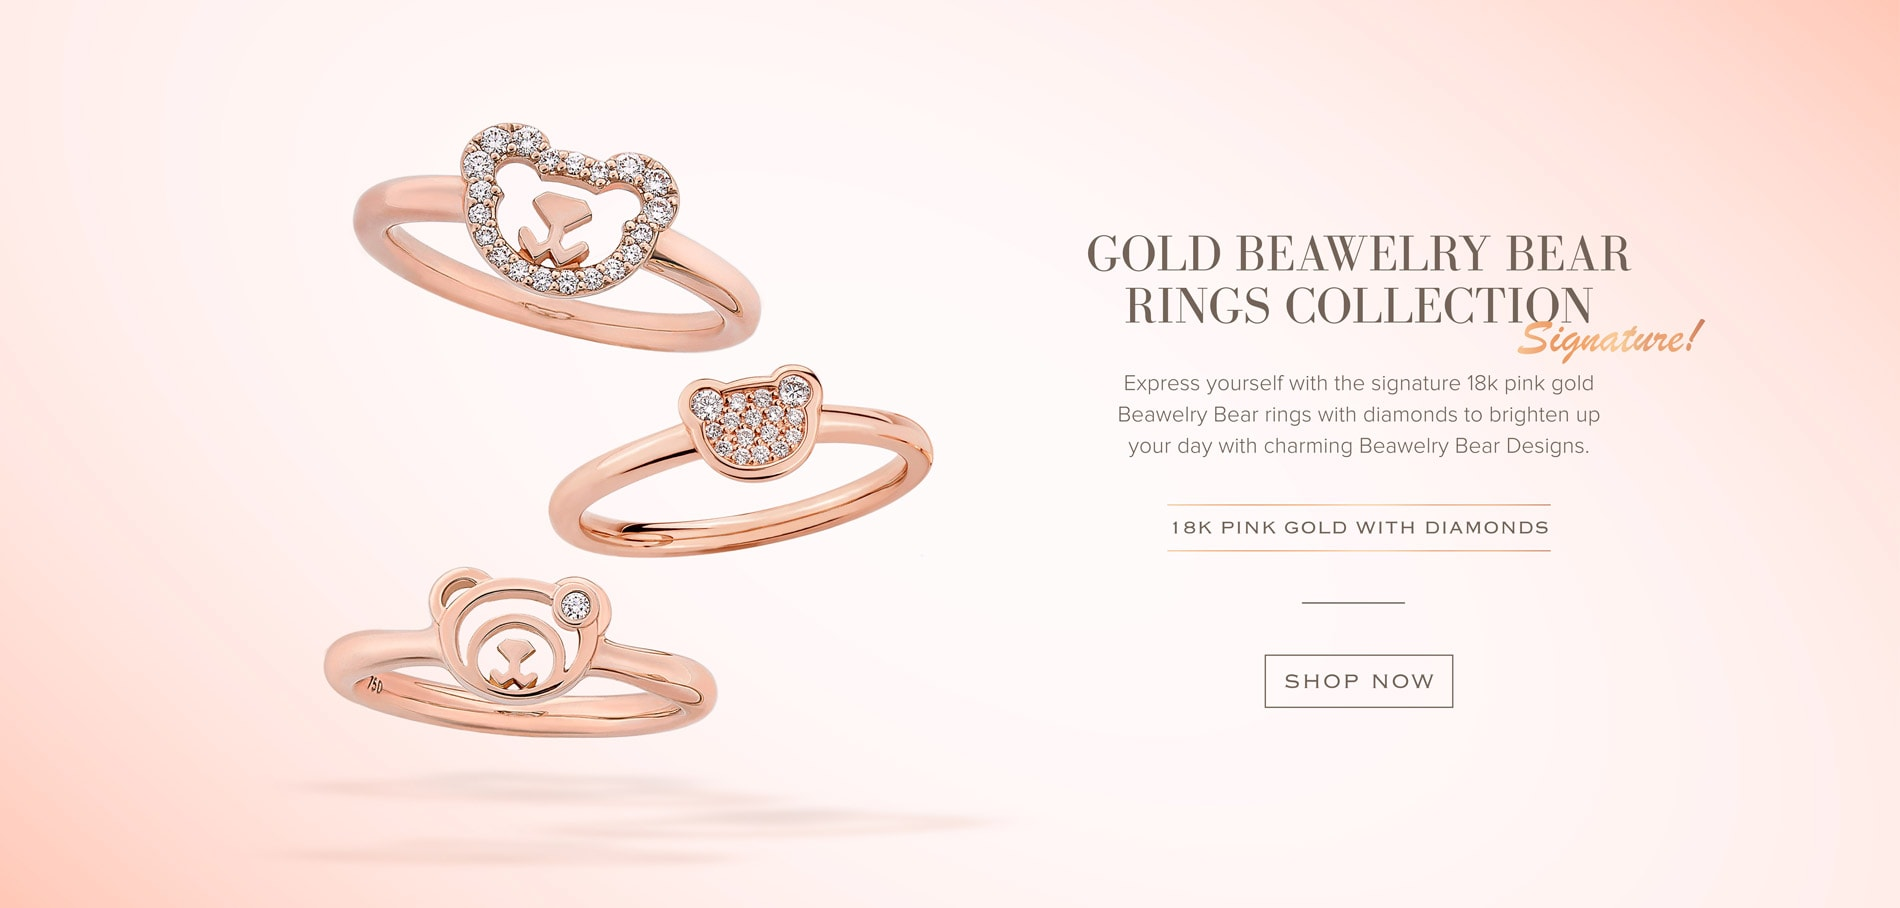 18k gold Beawelry Bear collection